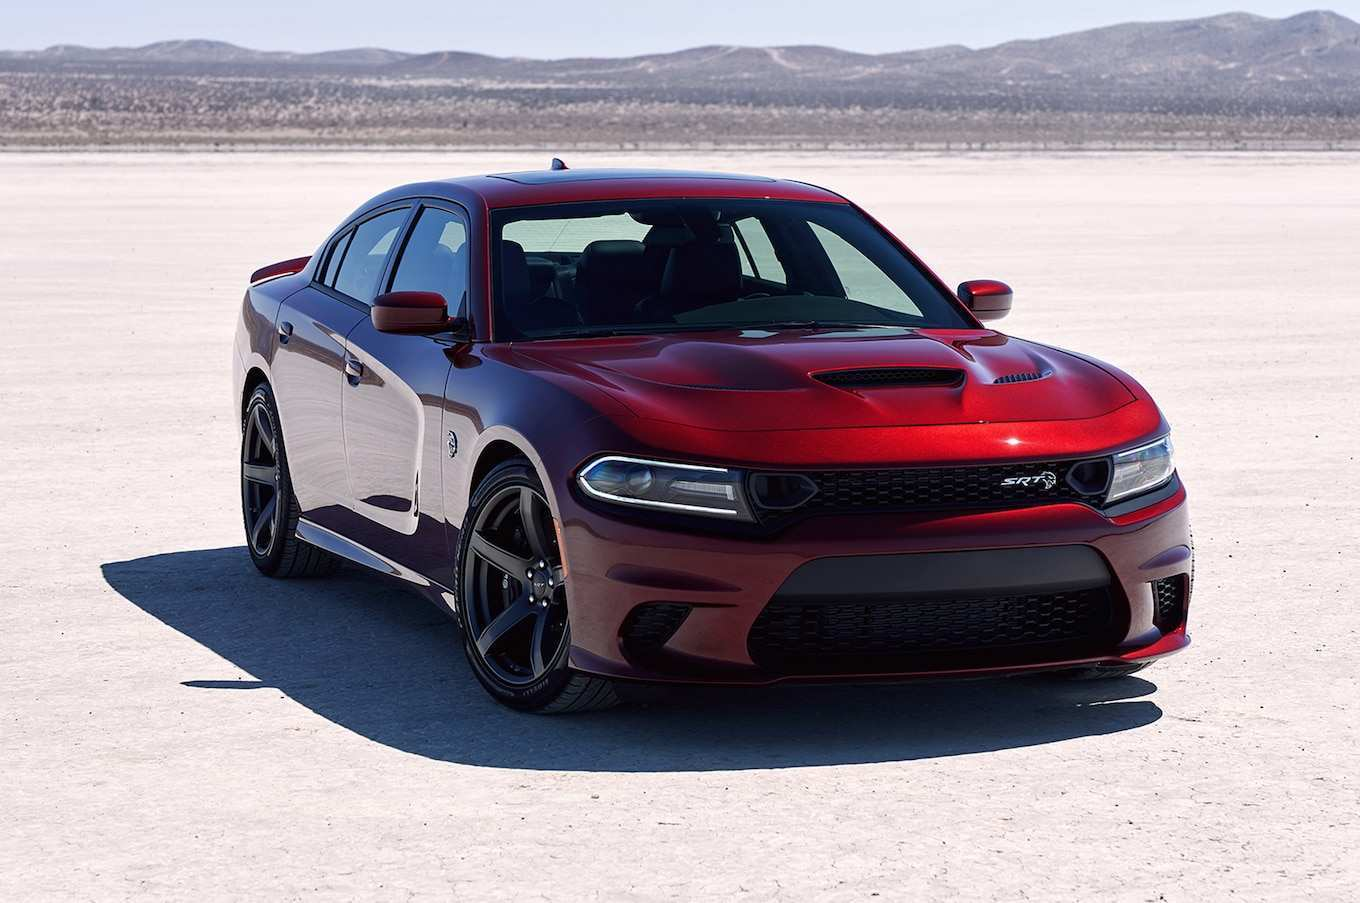 92 Best Review The New Dodge 2019 Charger Release Date New Review with The New Dodge 2019 Charger Release Date